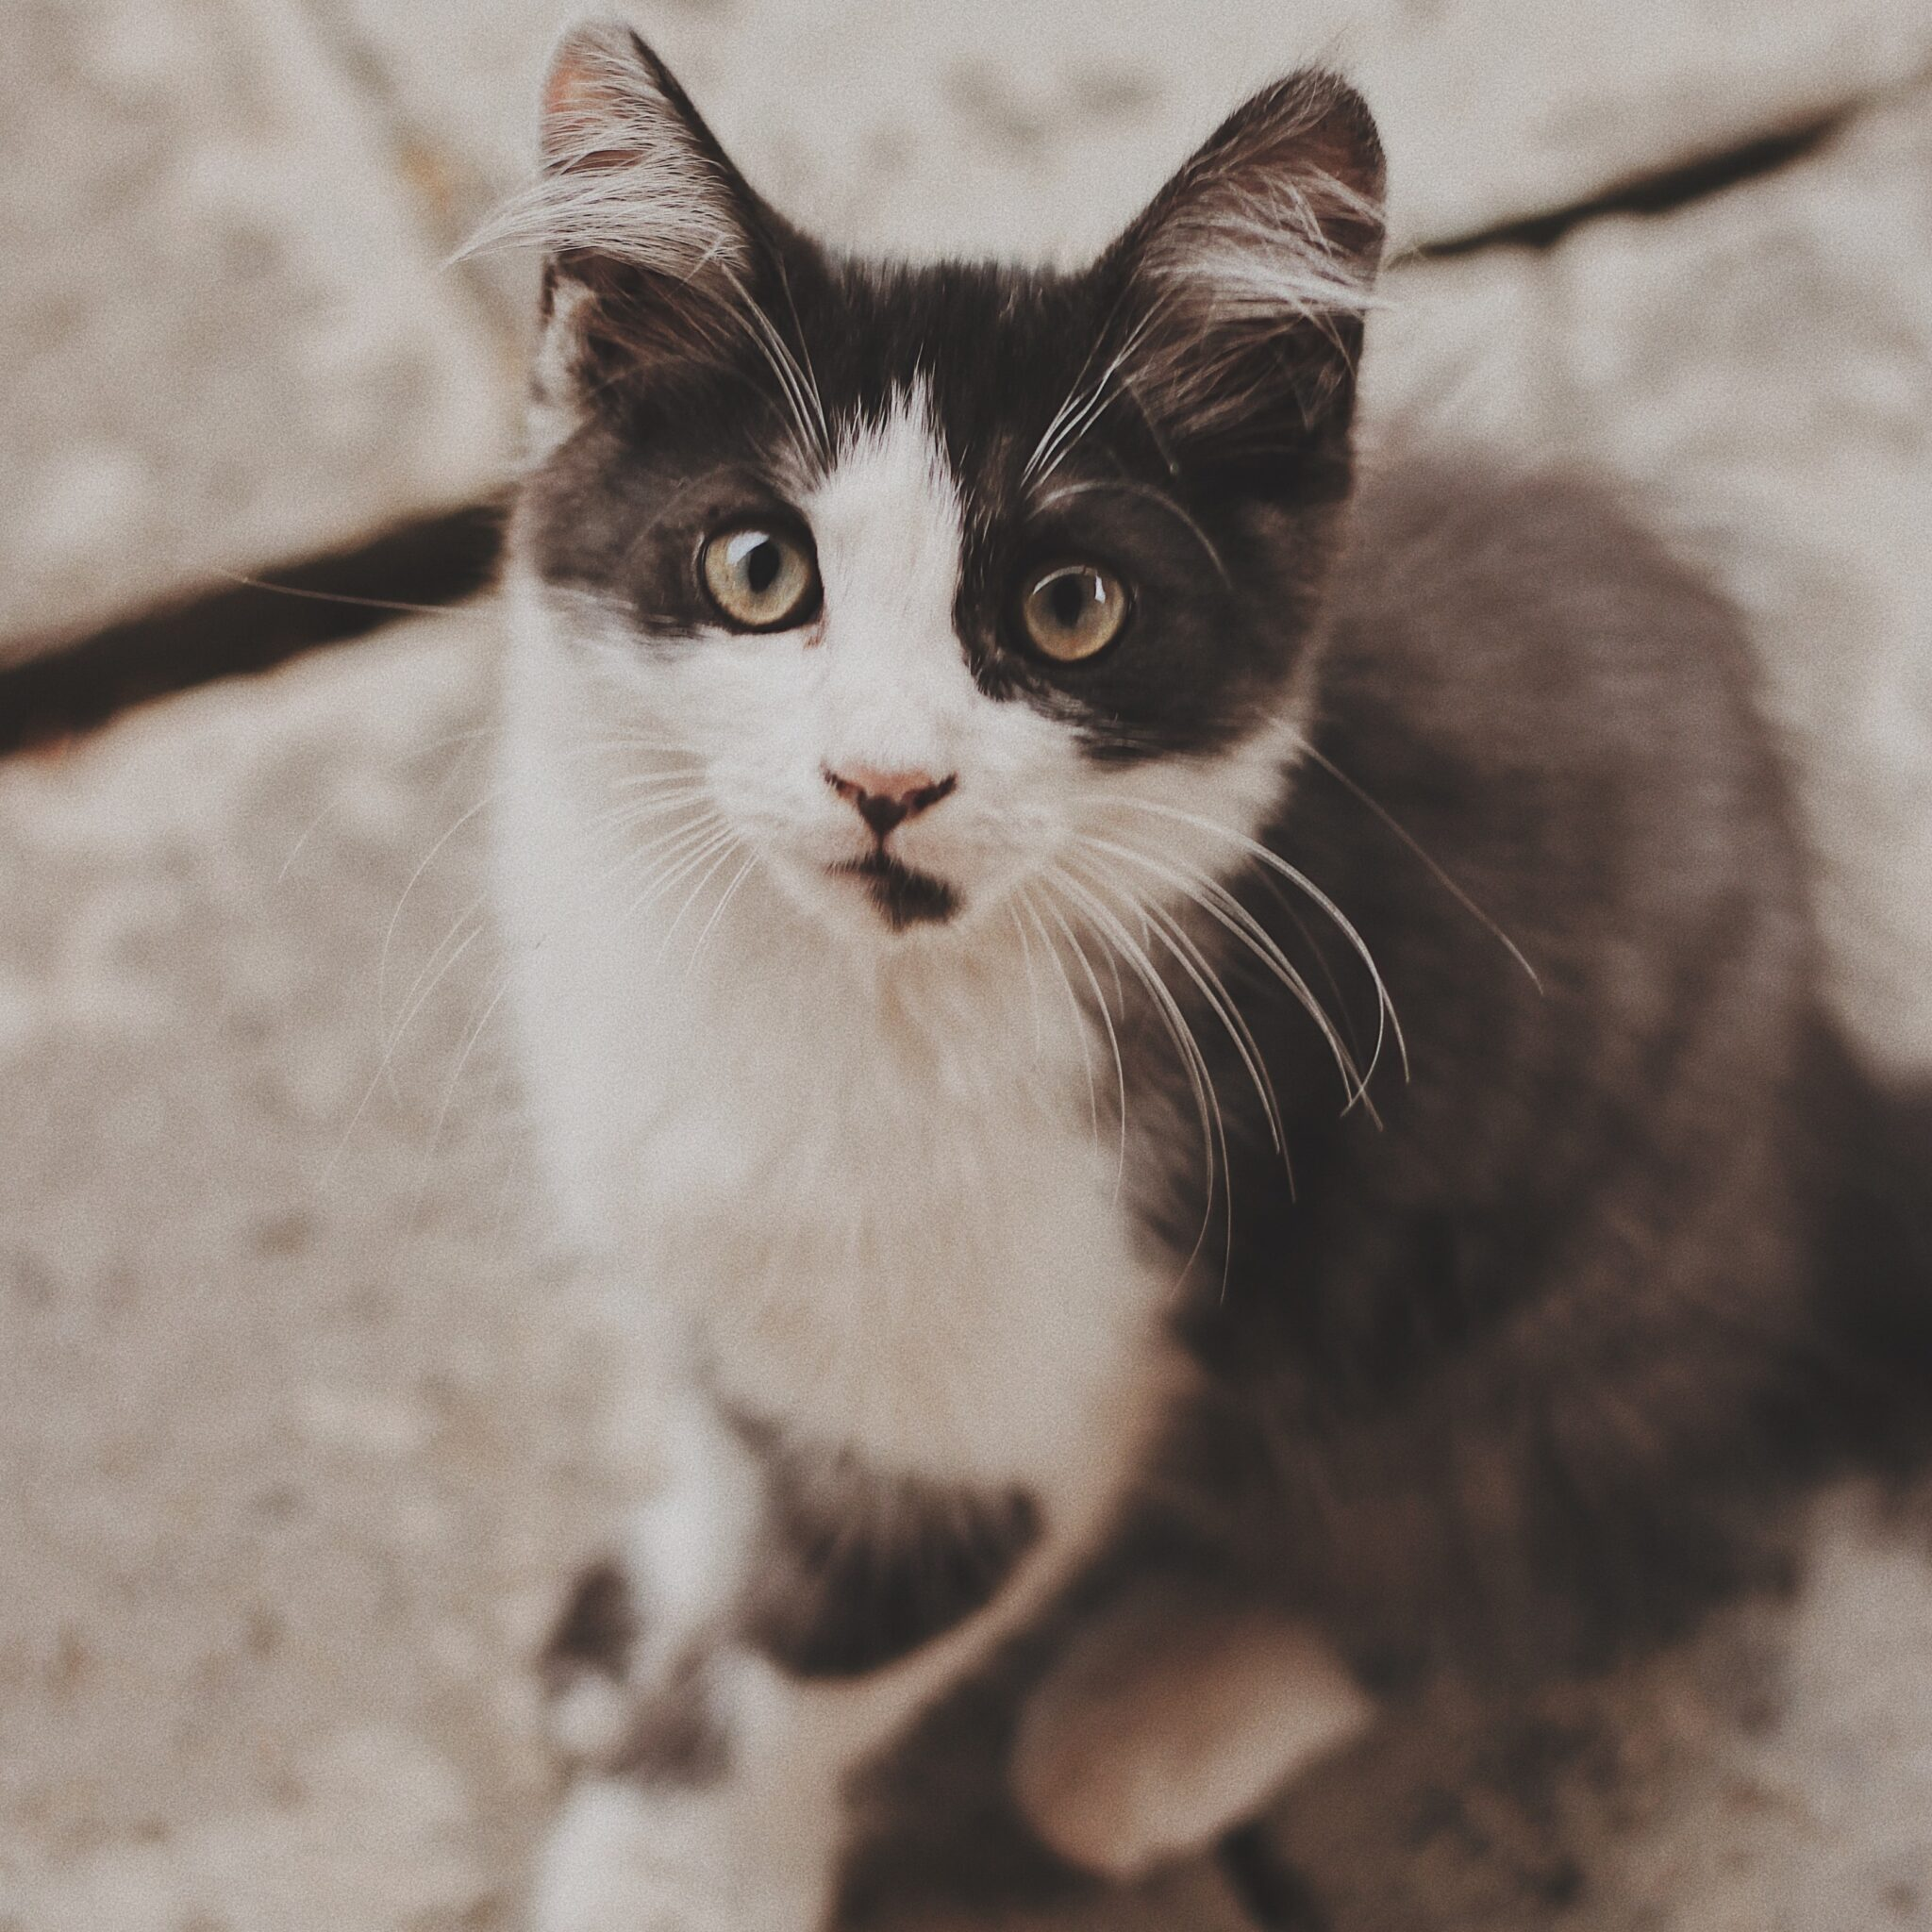 Grey and white kitten looking up at camera